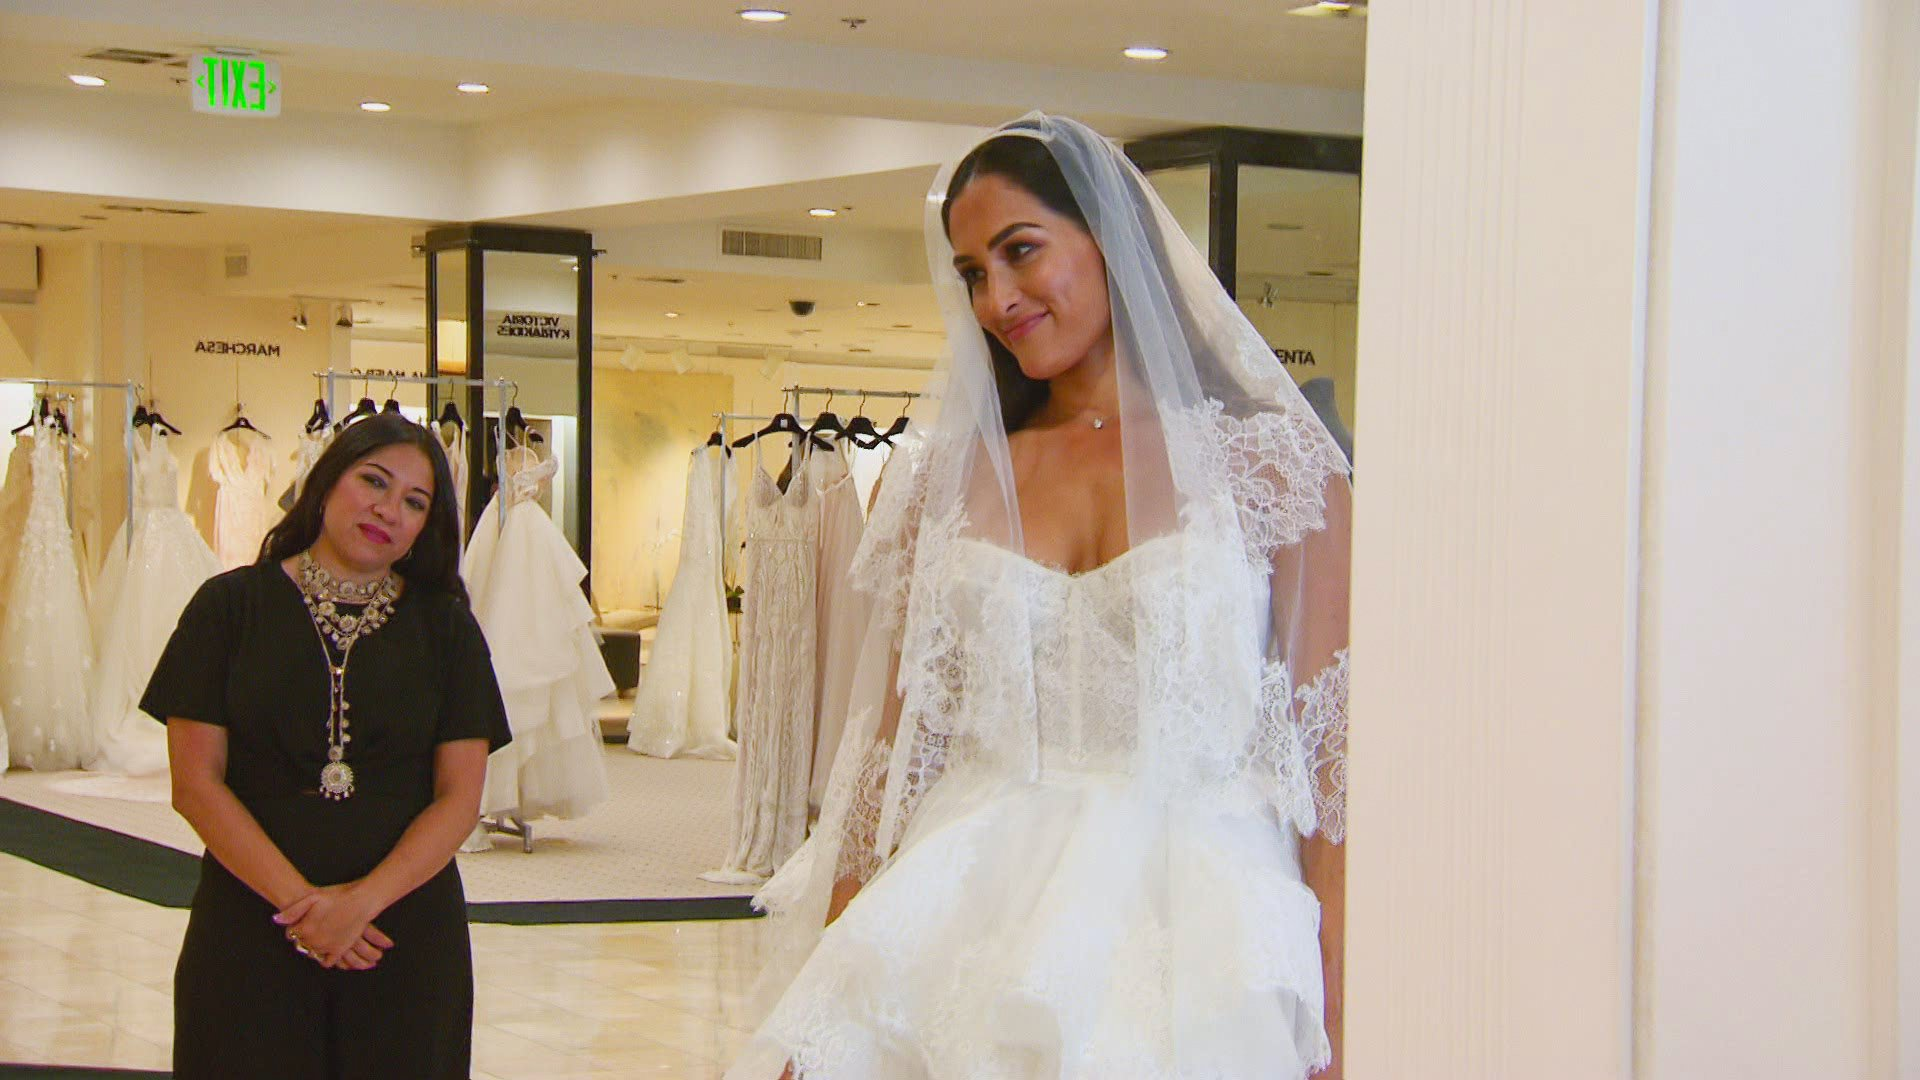 A Reluctant Nikki Bella Tries On Wedding Dresses In Front Of The